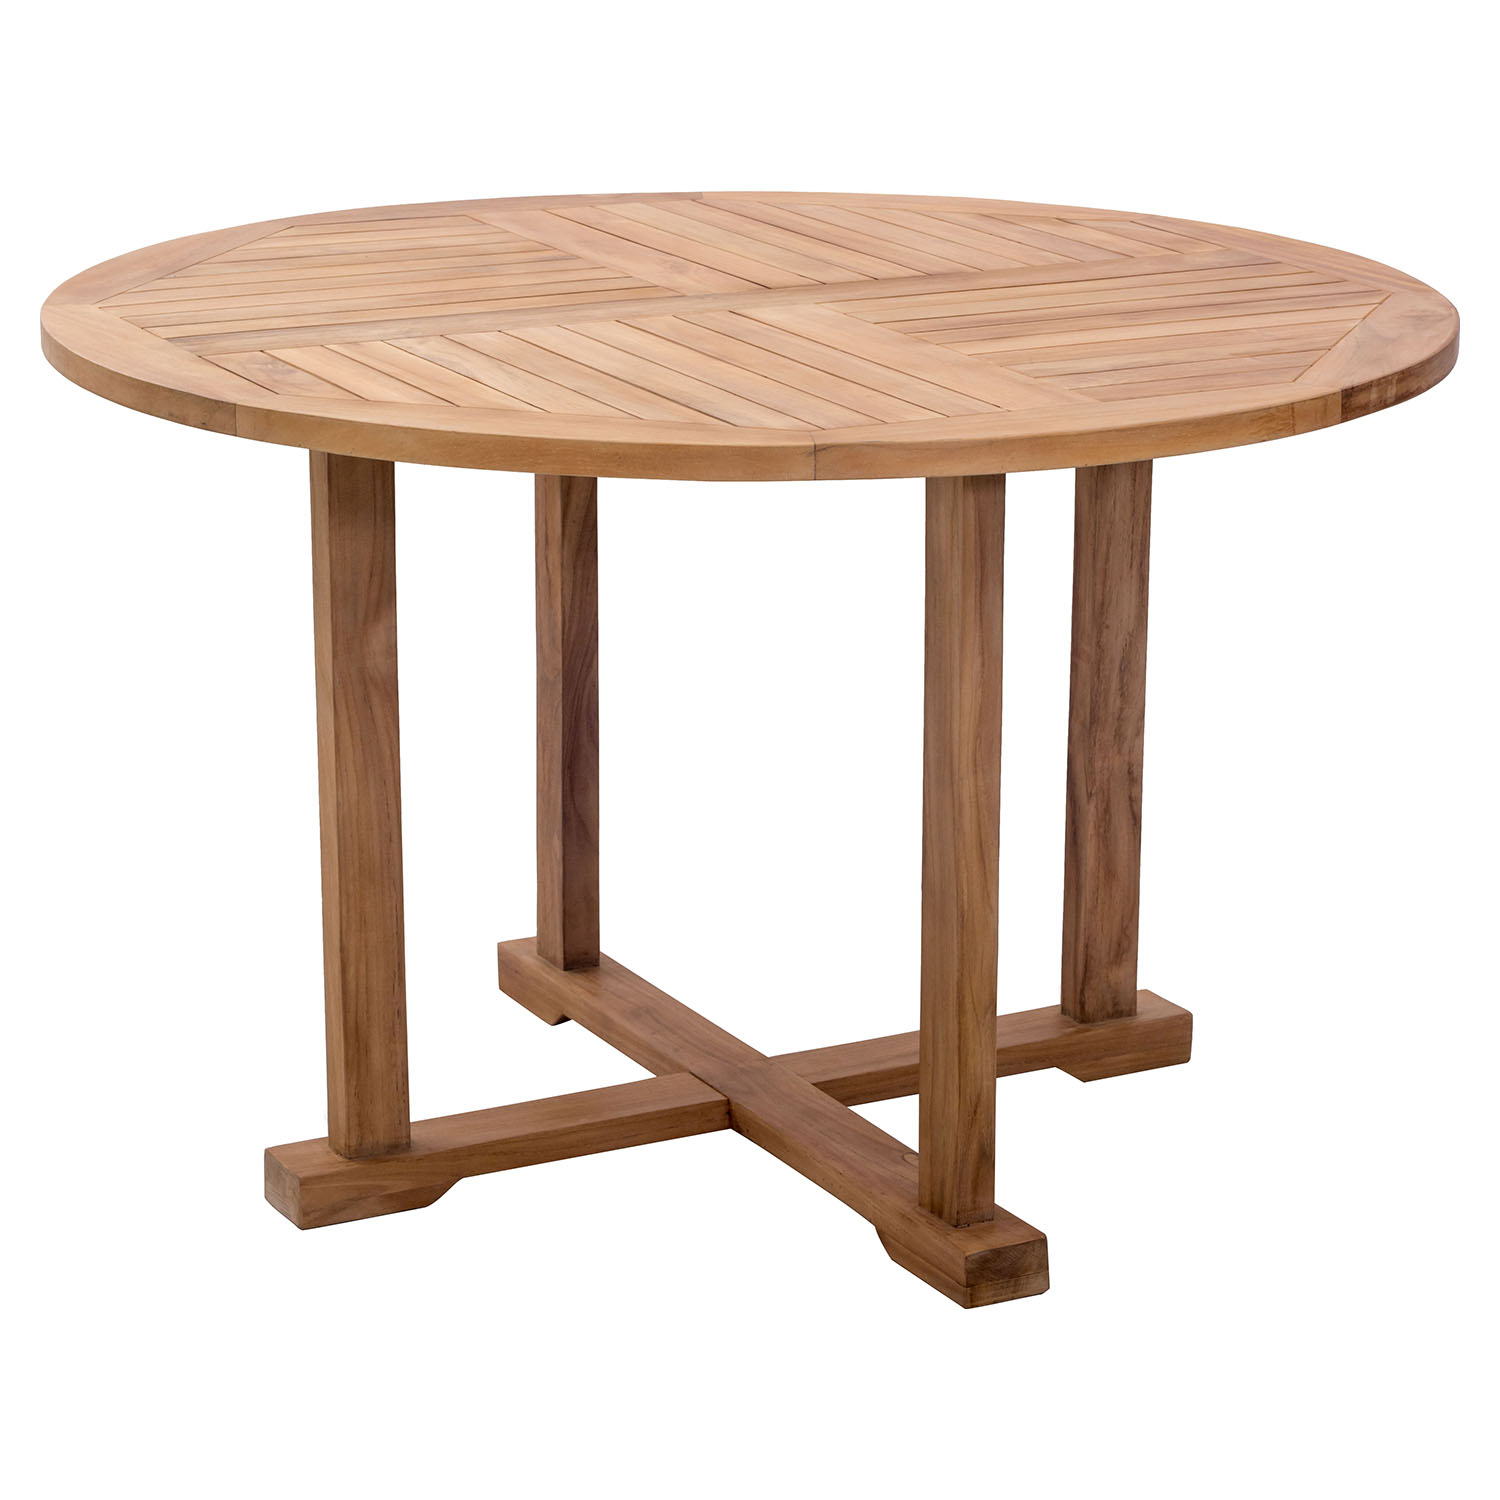 Regatta Dining Table - Natural - ZM-703548